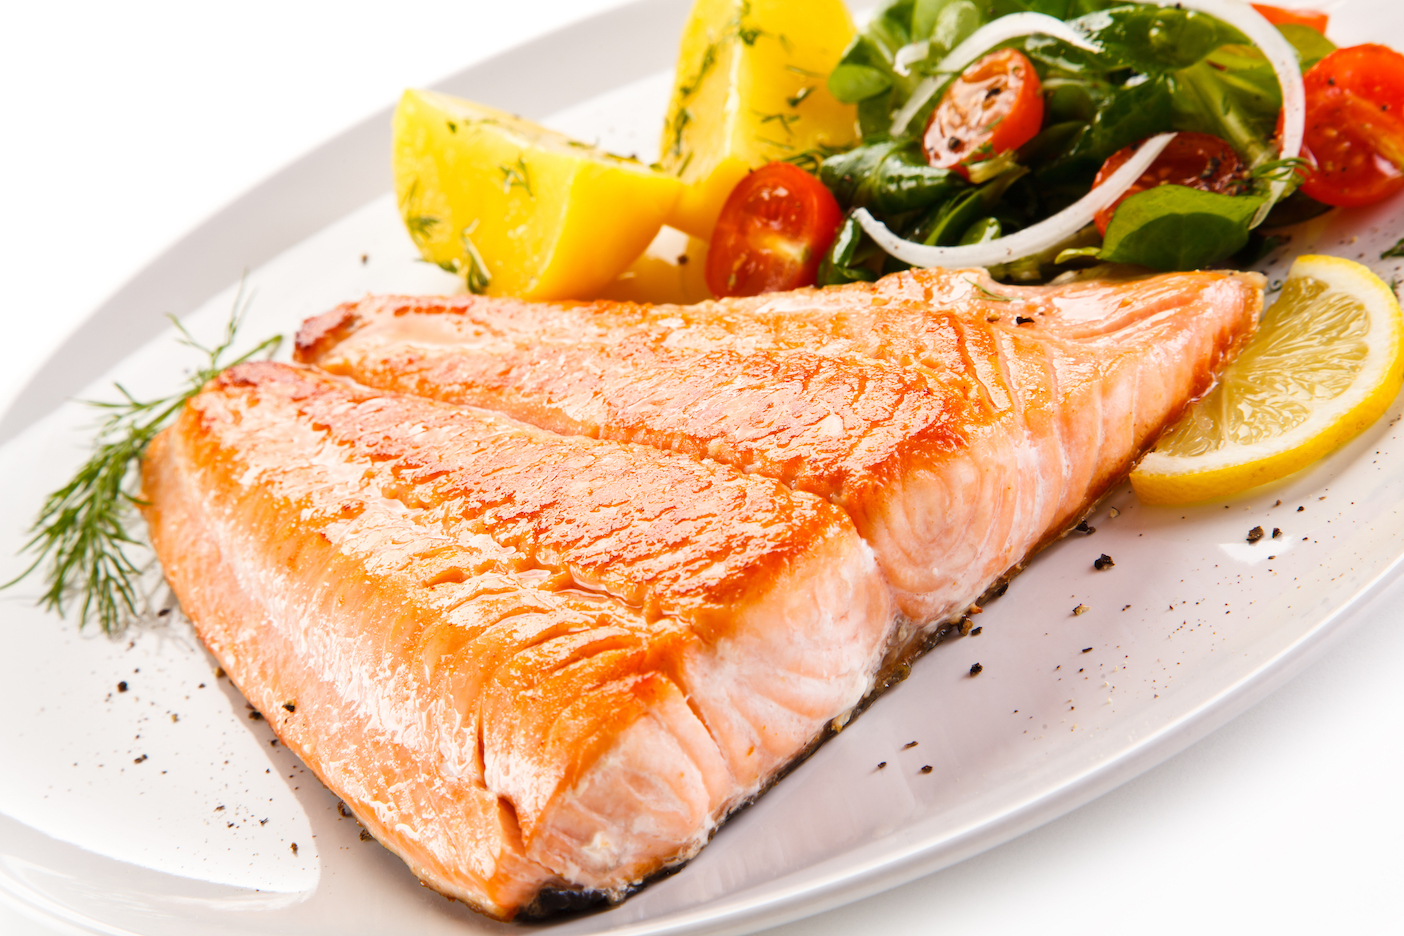 Researchers have found that children who eat fish at least once a week sleep better and have higher IQ scores.